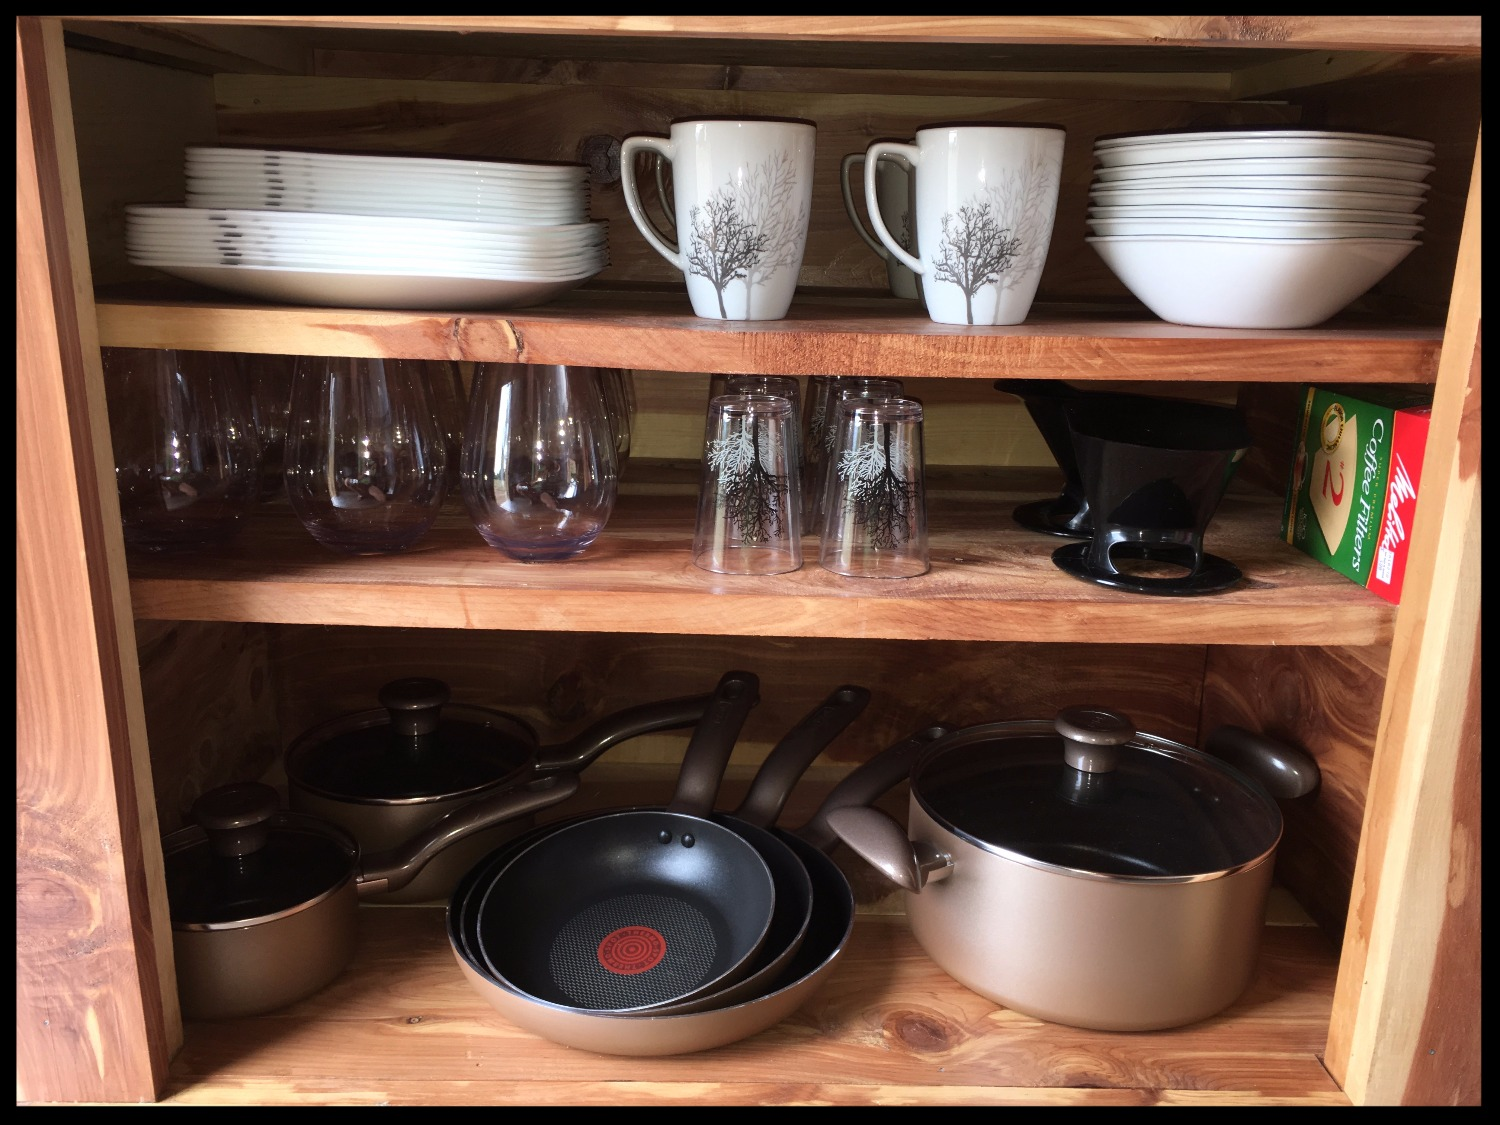 Complete cookware, dishes, utensils